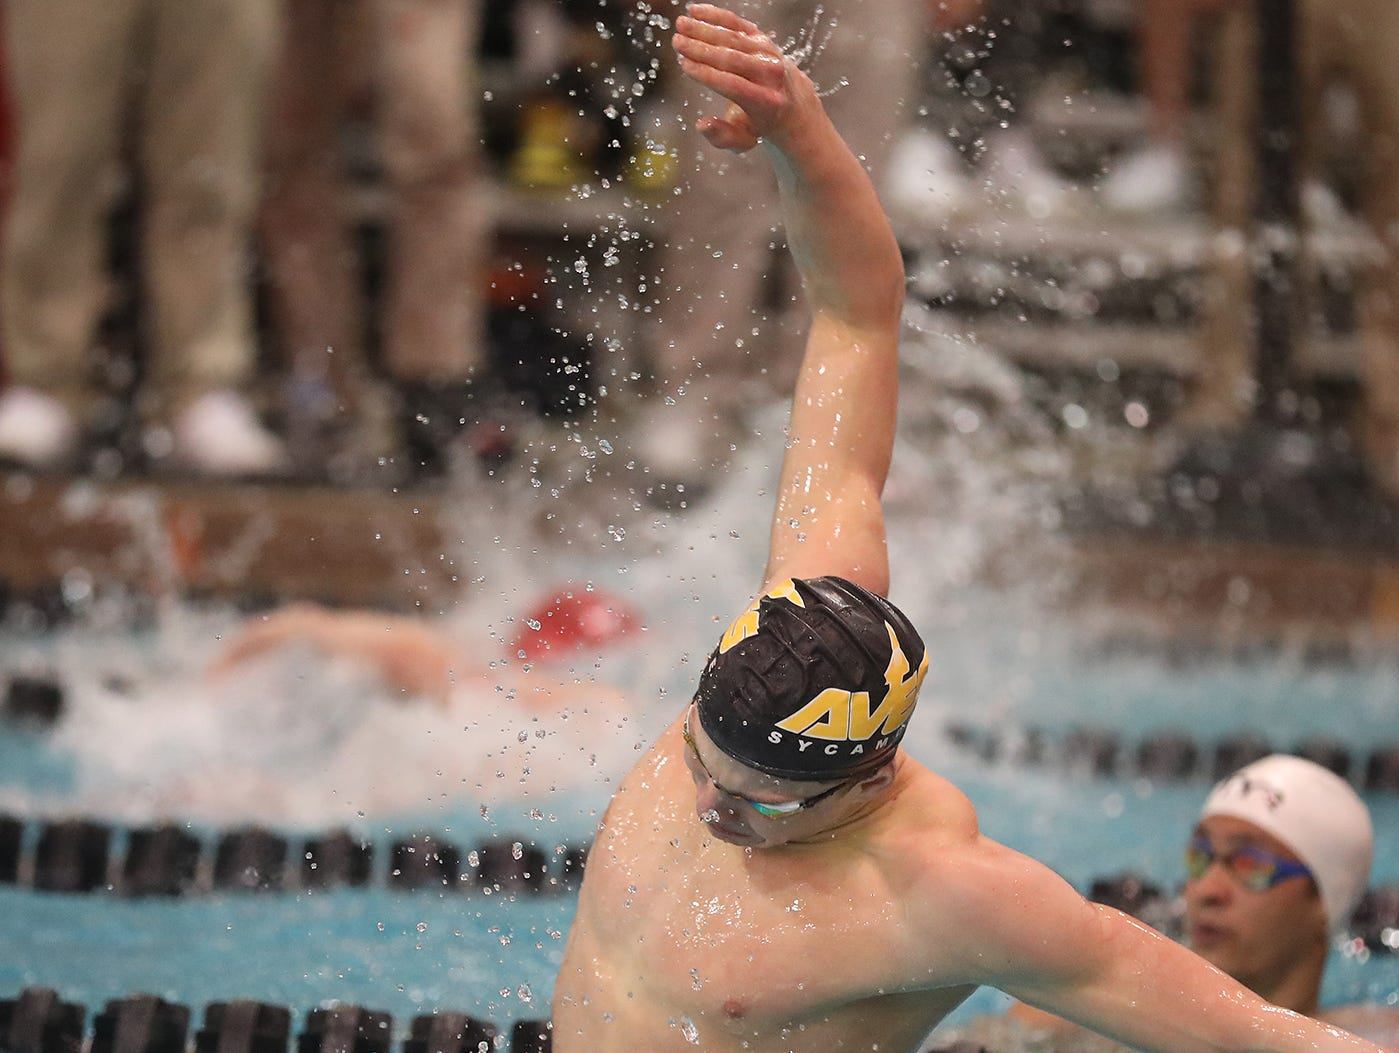 Sycamore state champion Carson Foster reacts during the OHSAA swimming and diving championships in Canton, Ohio, Friday Feb. 23, 2019.